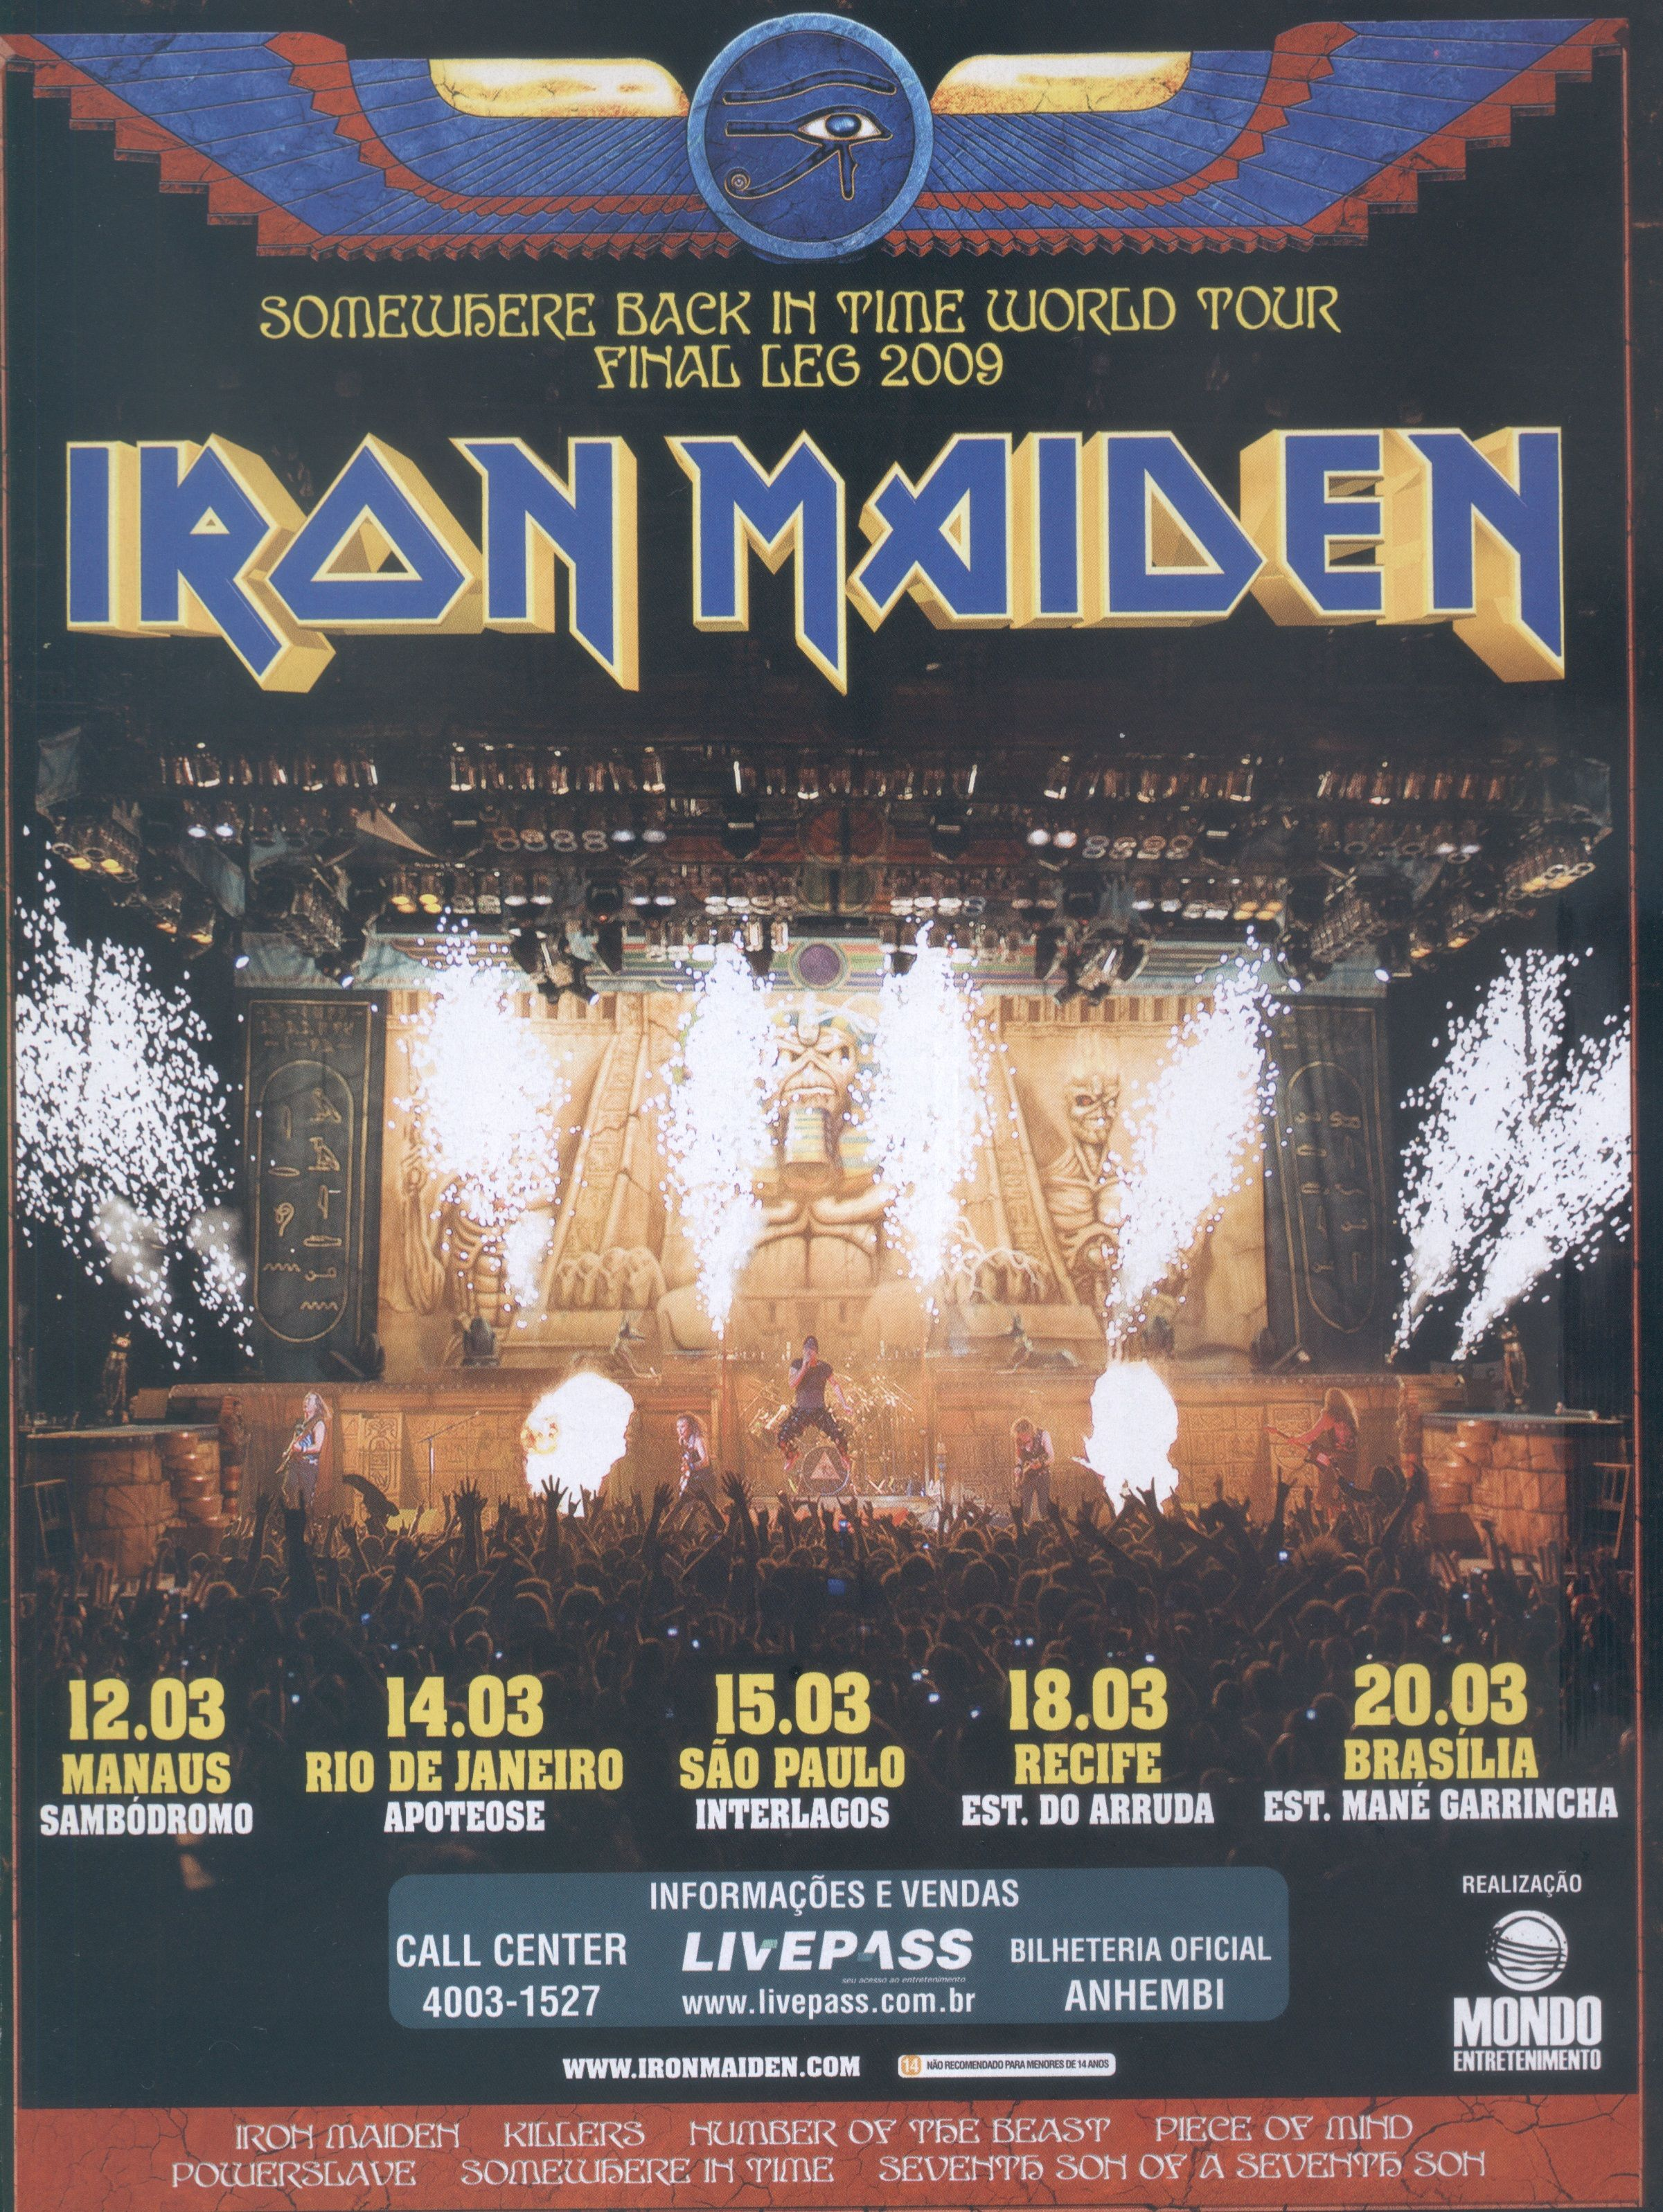 Pin by Bob Shekerko on Concert Posters! | Iron maiden band